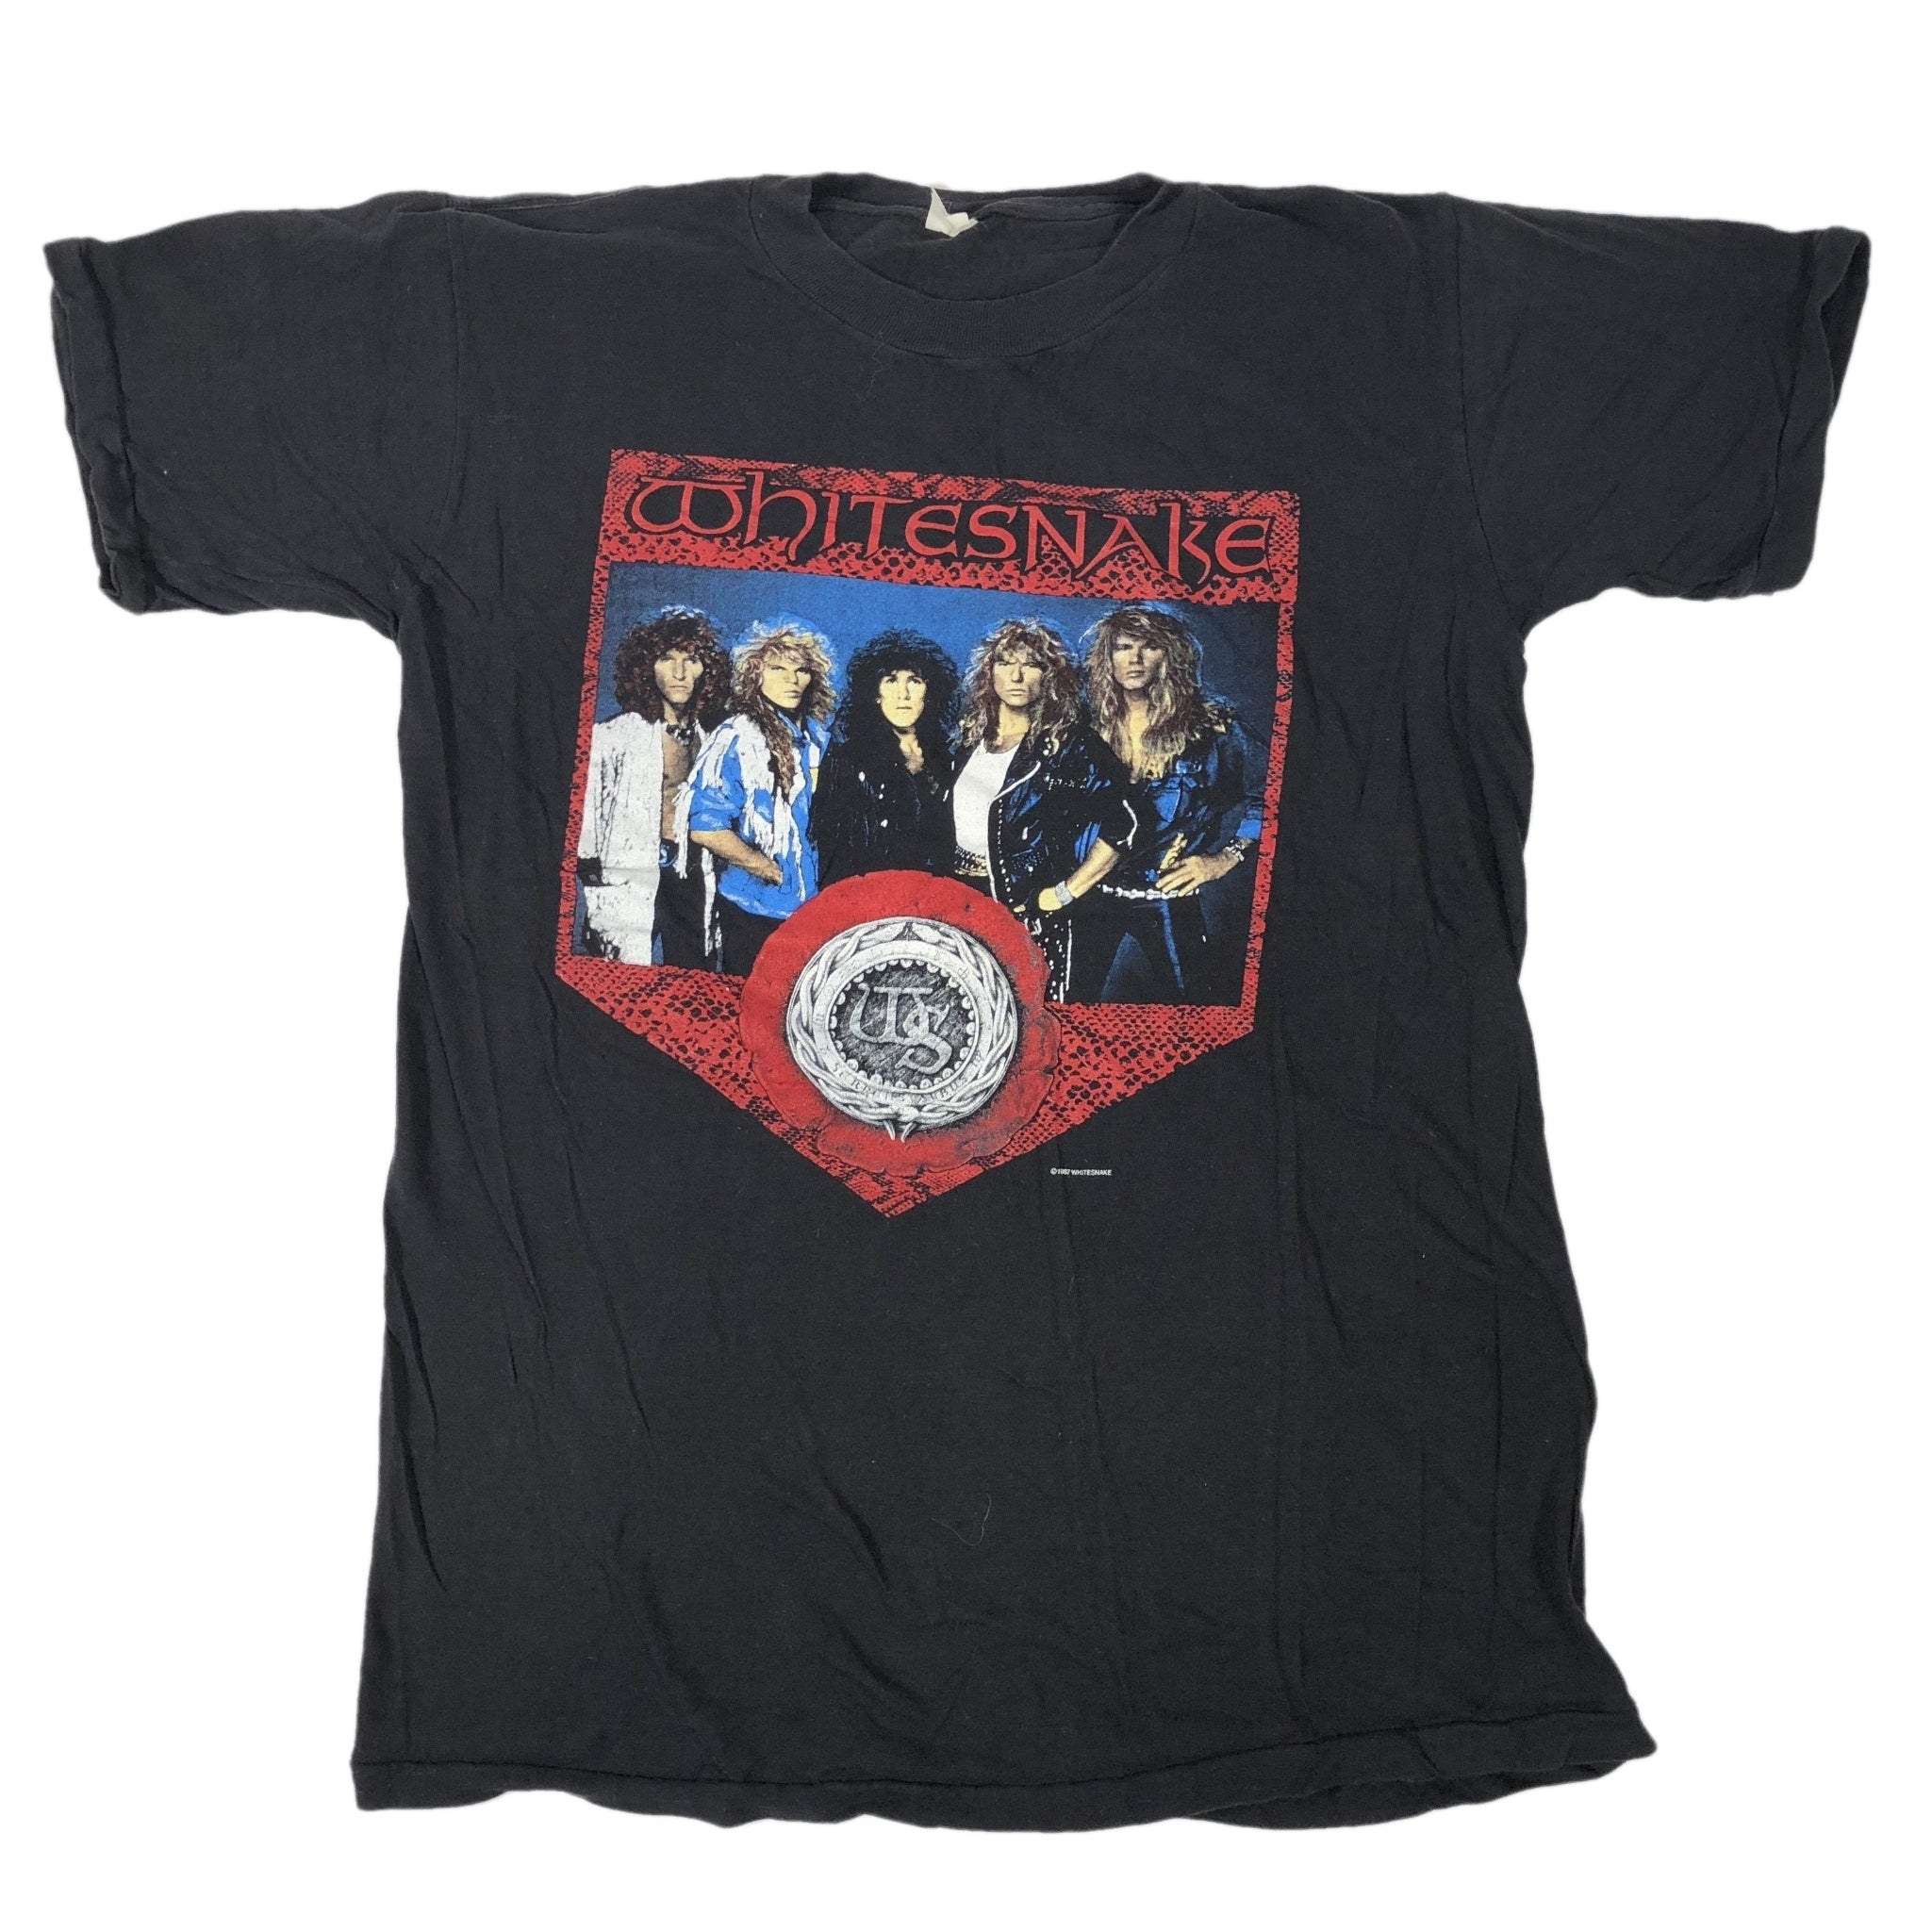 "Vintage Whitesnake ""North American Tour '87-88"" T-Shirt - jointcustodydc"